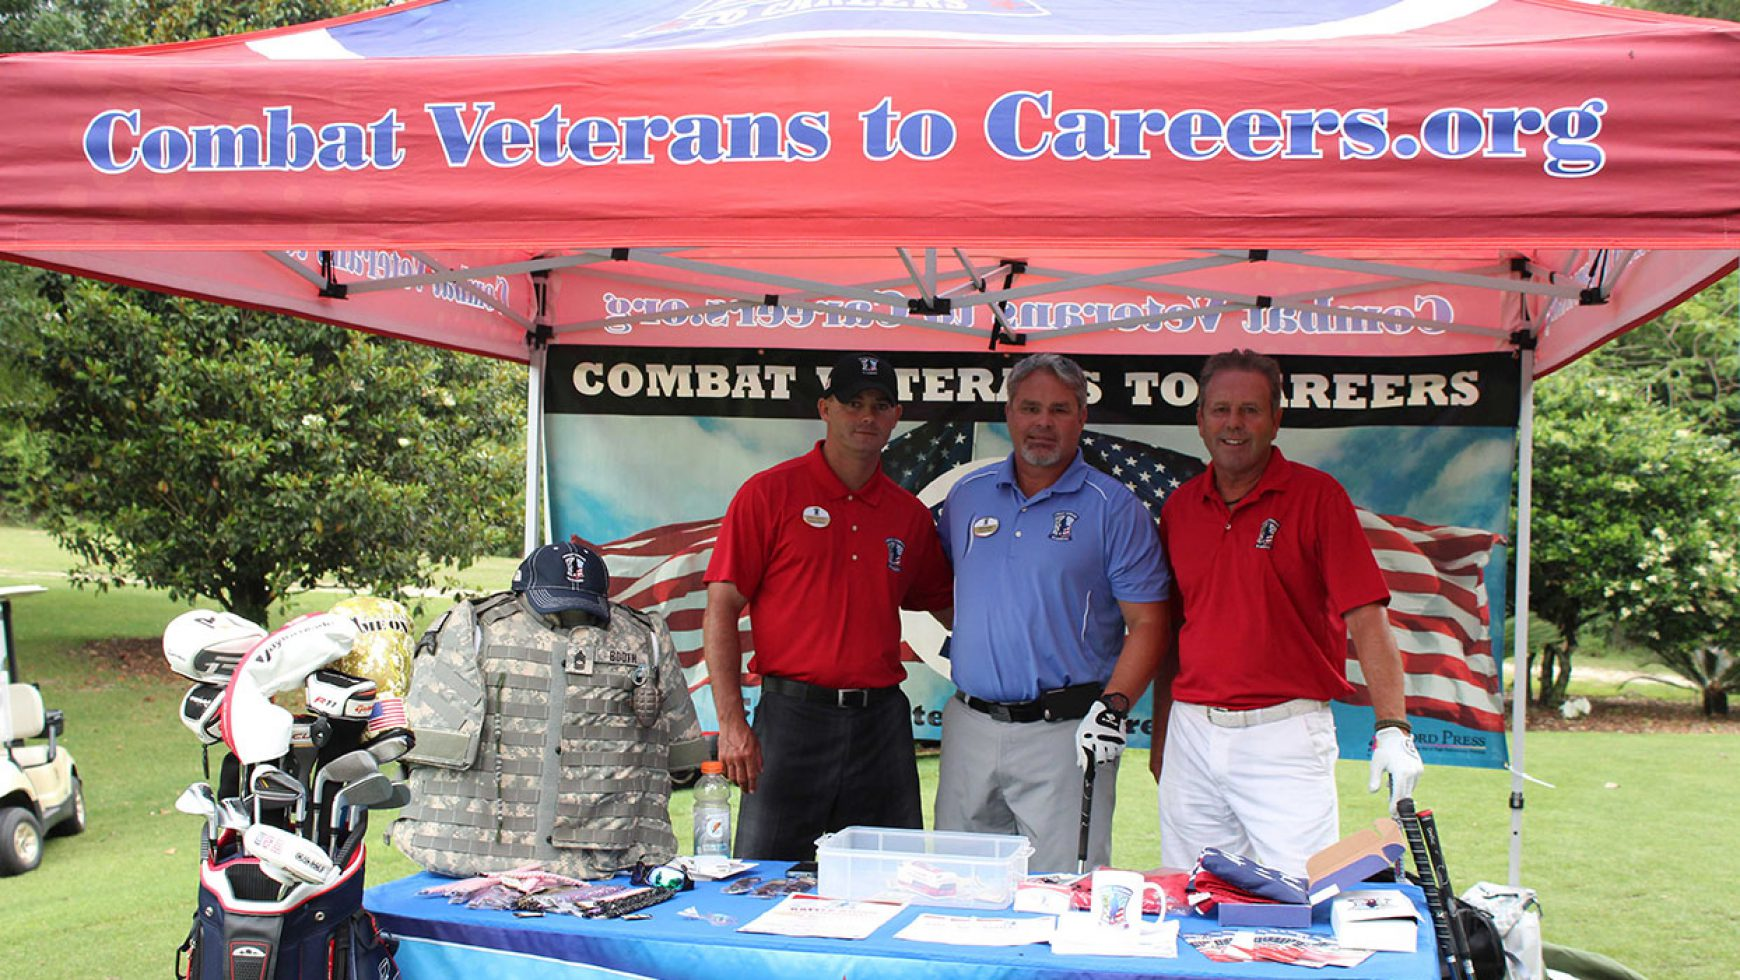 Volunteers Needed for the 5th Annual Battle Buddy Golf Tournament